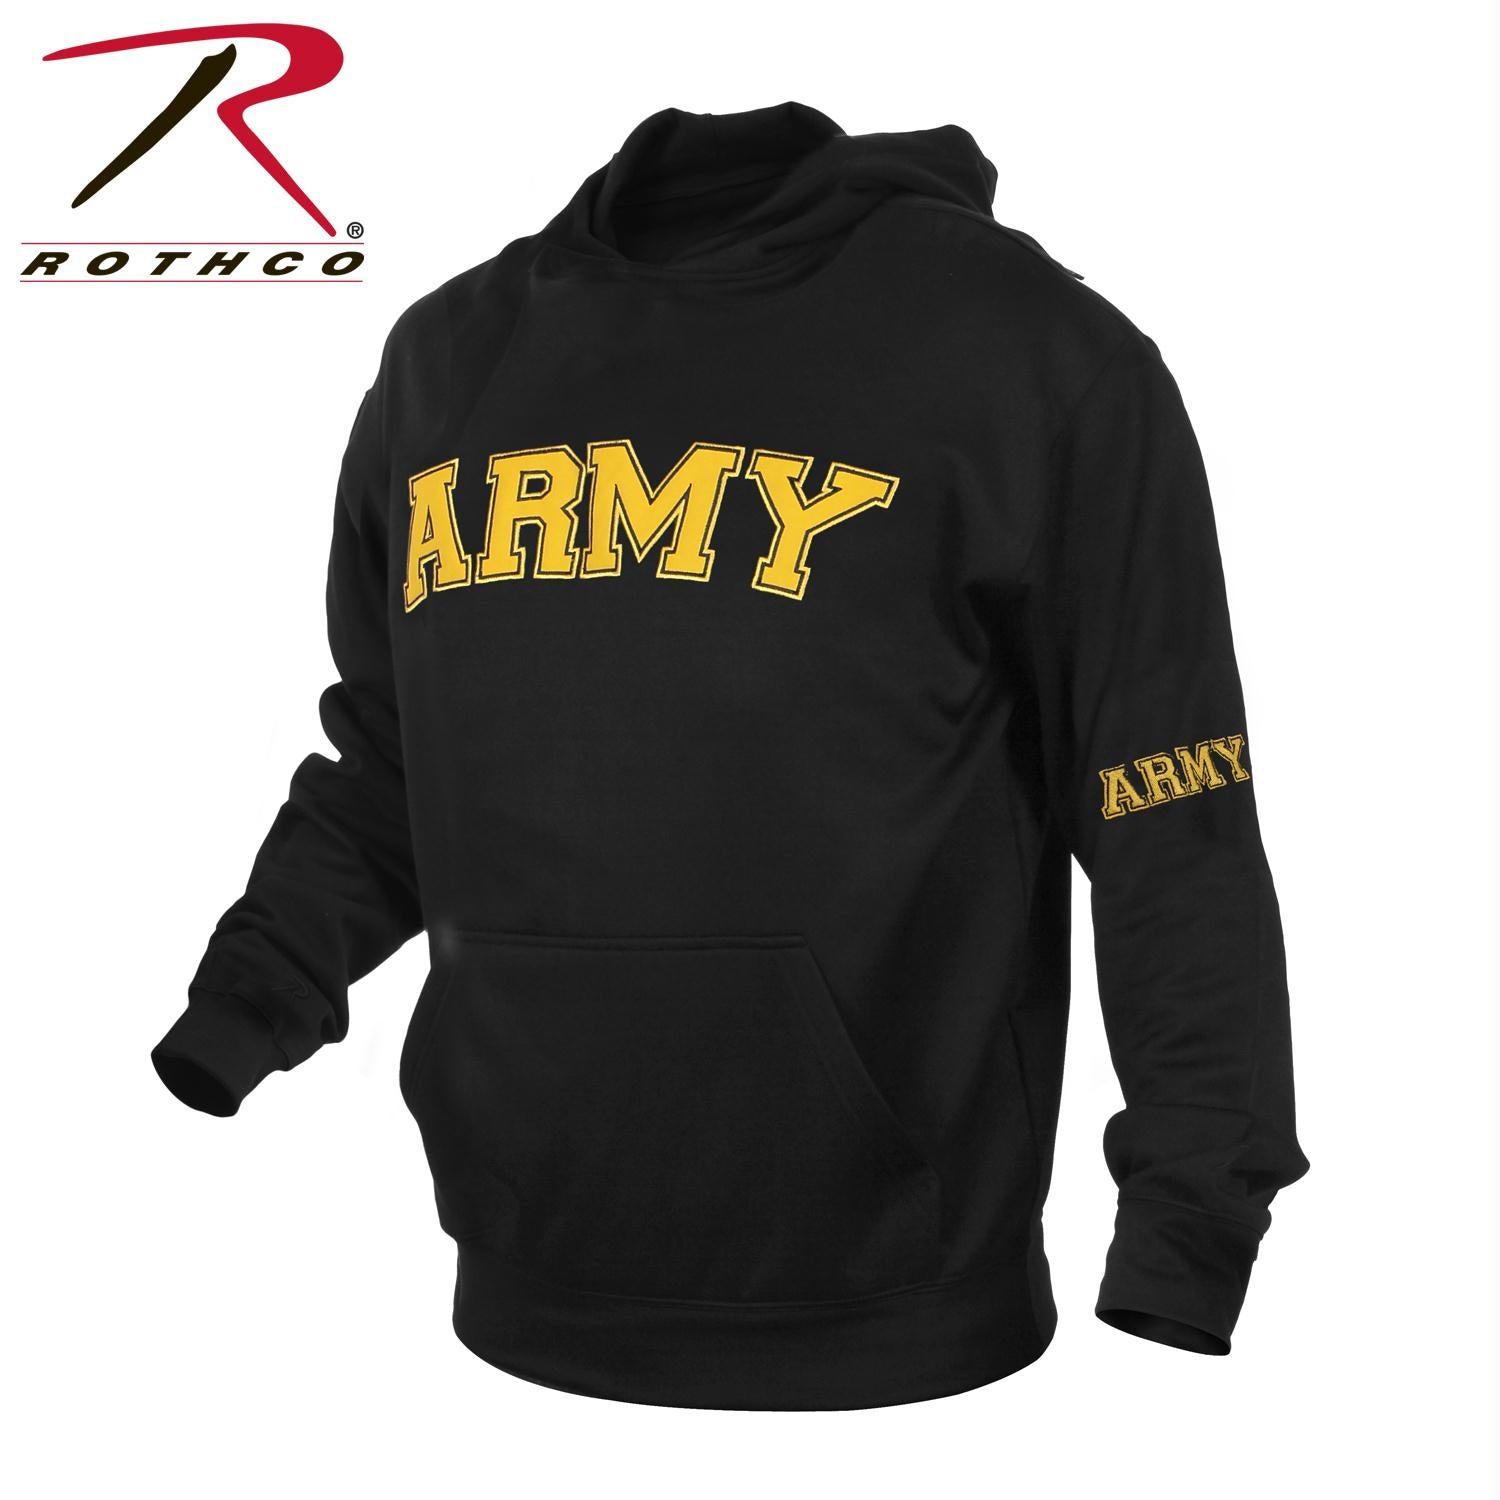 Rothco Military Embroidered Pullover Hoodies - Air Force / XL